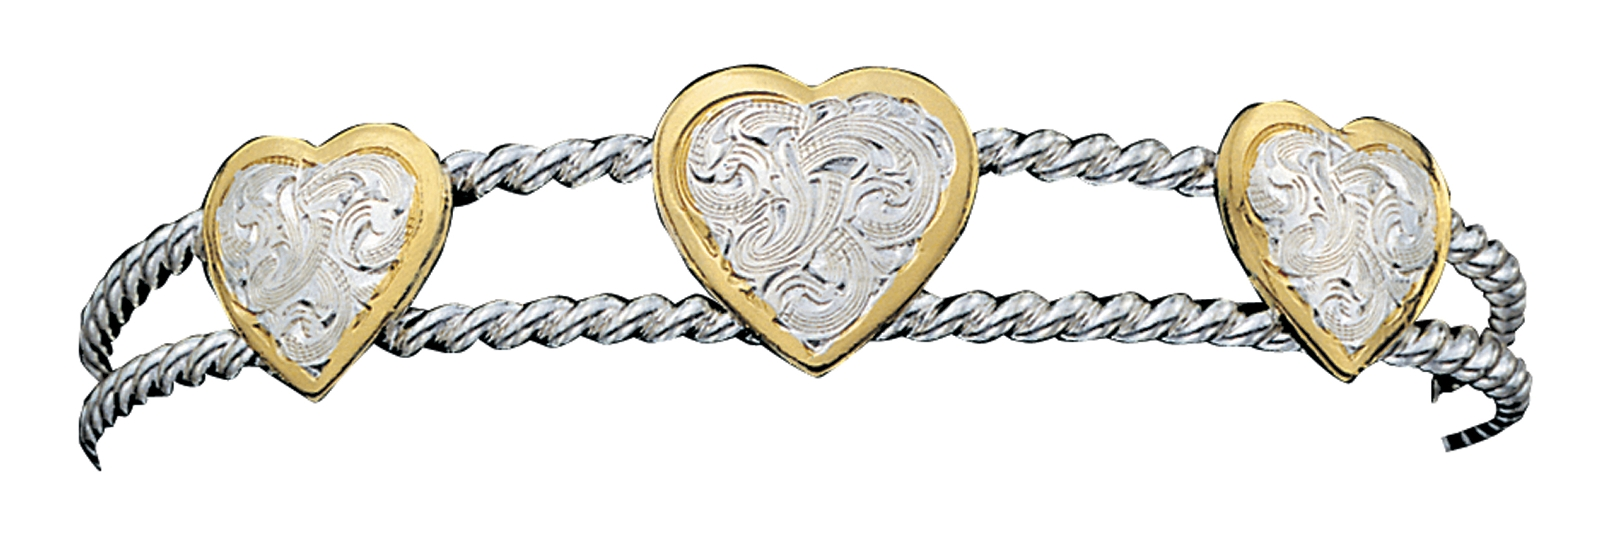 Montana Silversmiths 3 Hearts onofTwisted Rope Bracelet